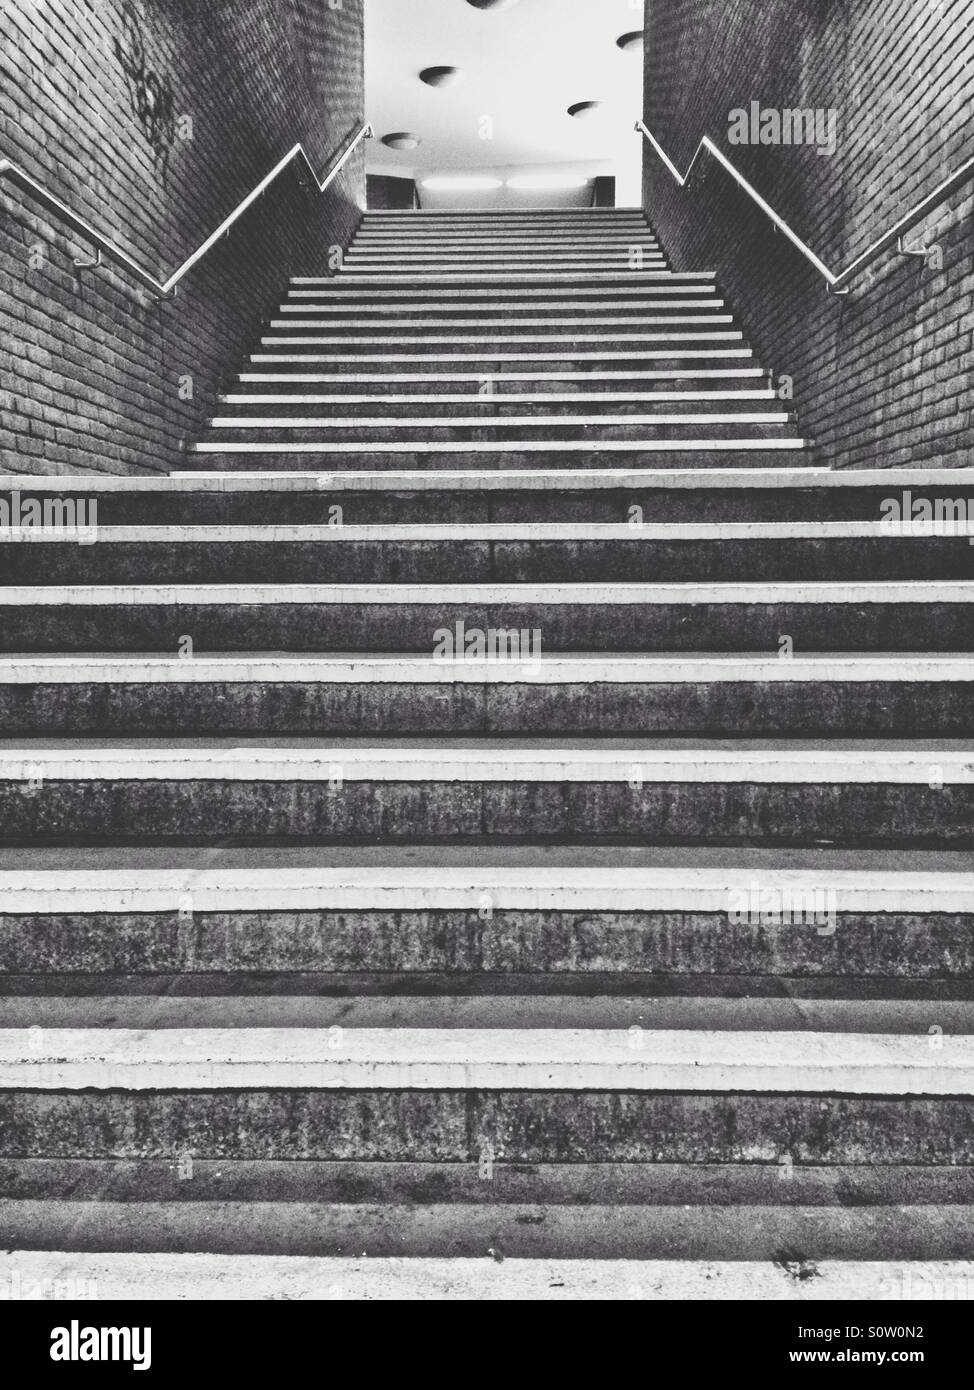 Stairs in a subway station looking up - Stock Image